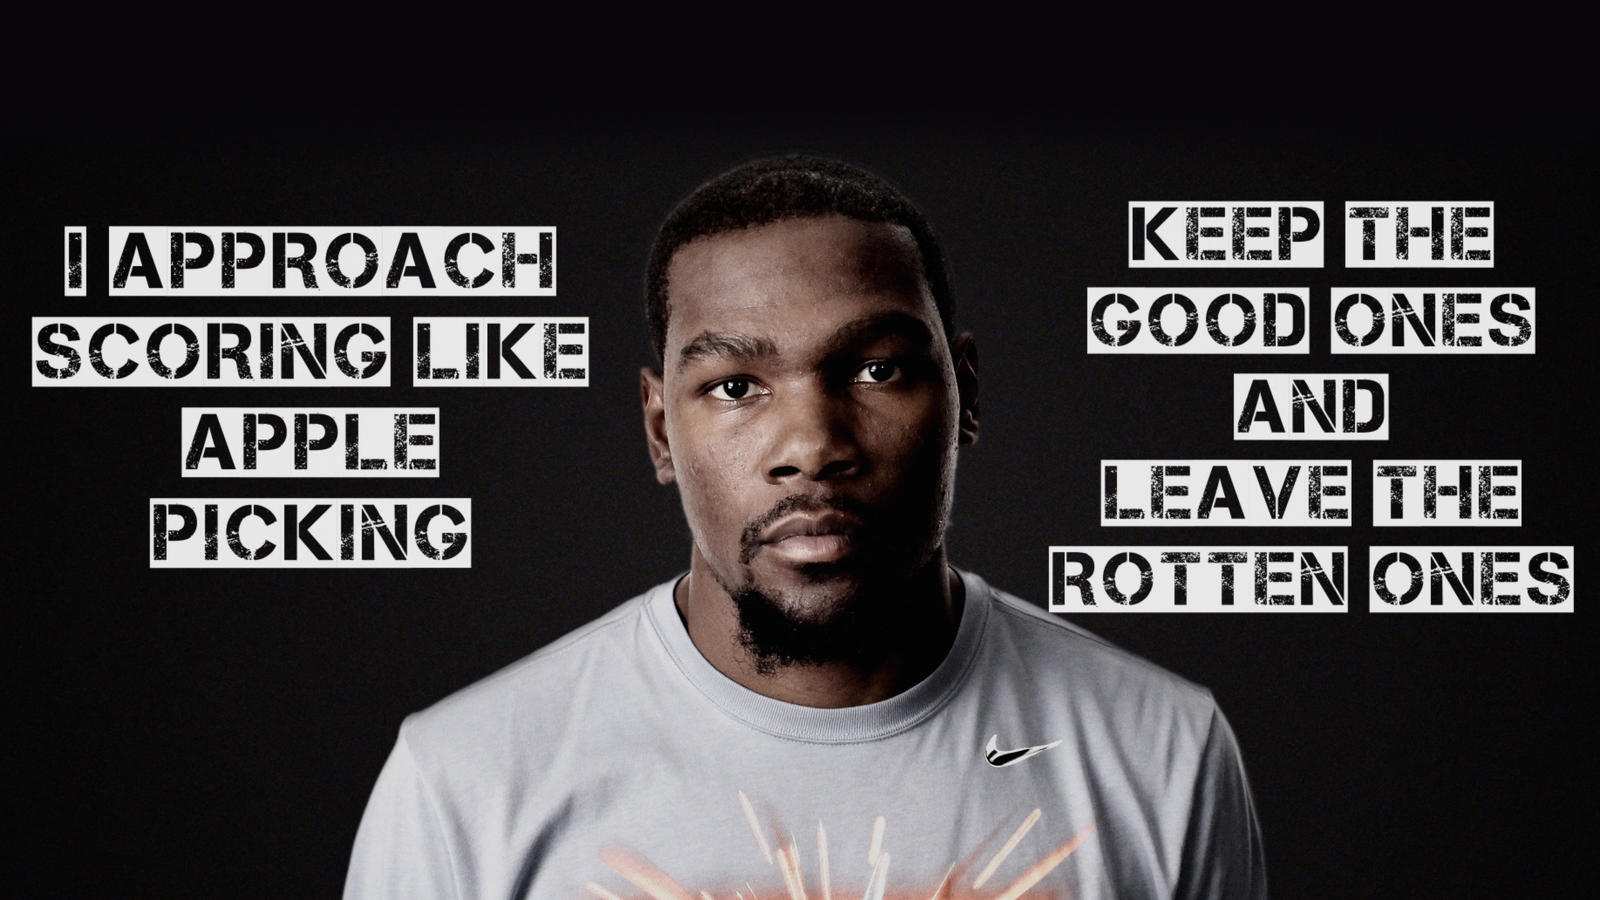 kd_quote